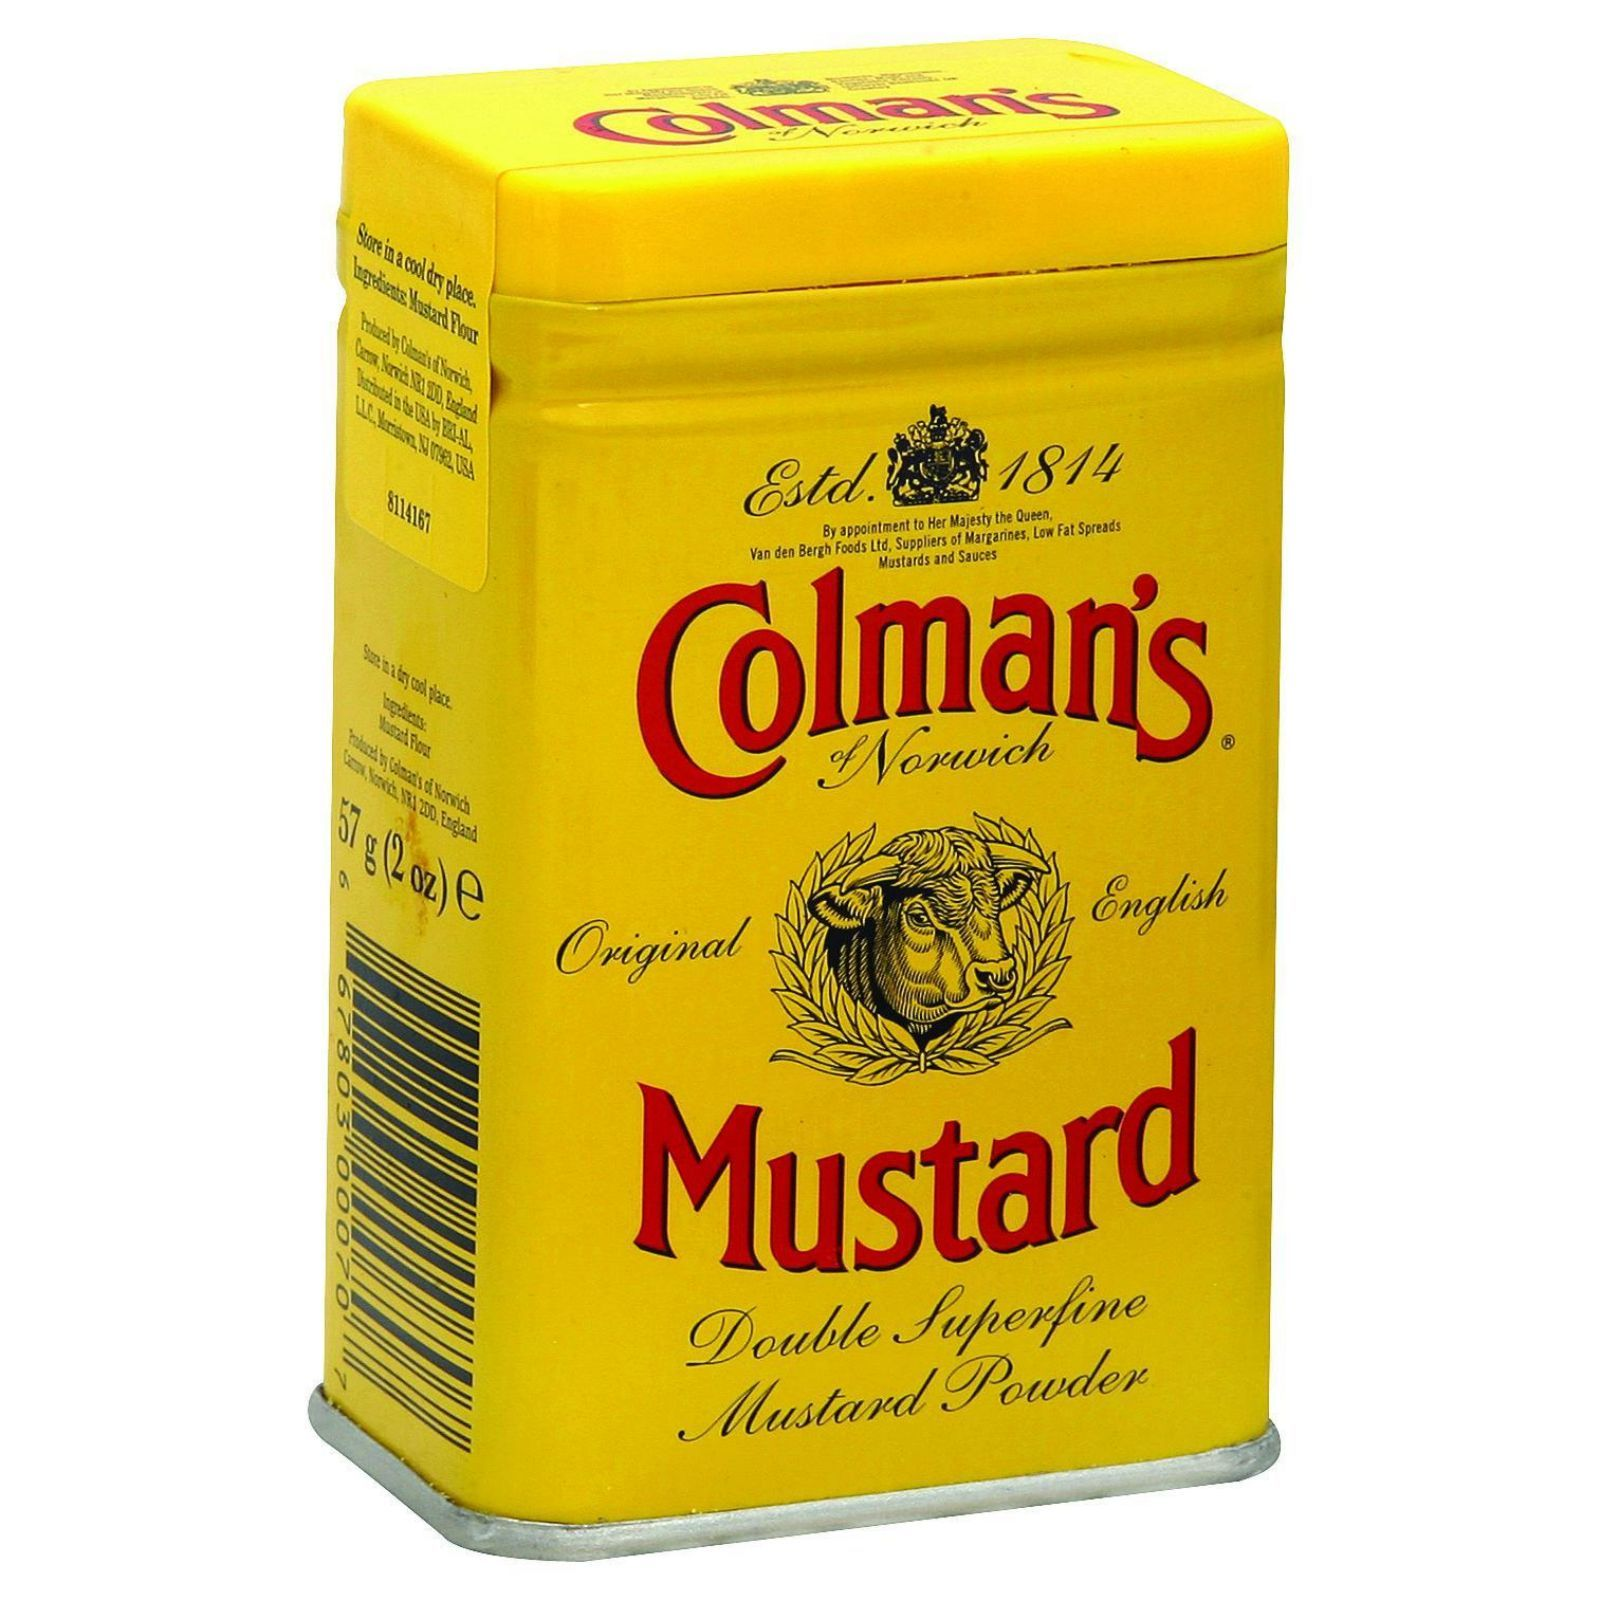 Colmans Dry Mustard Powder - 2 oz - Case of 12